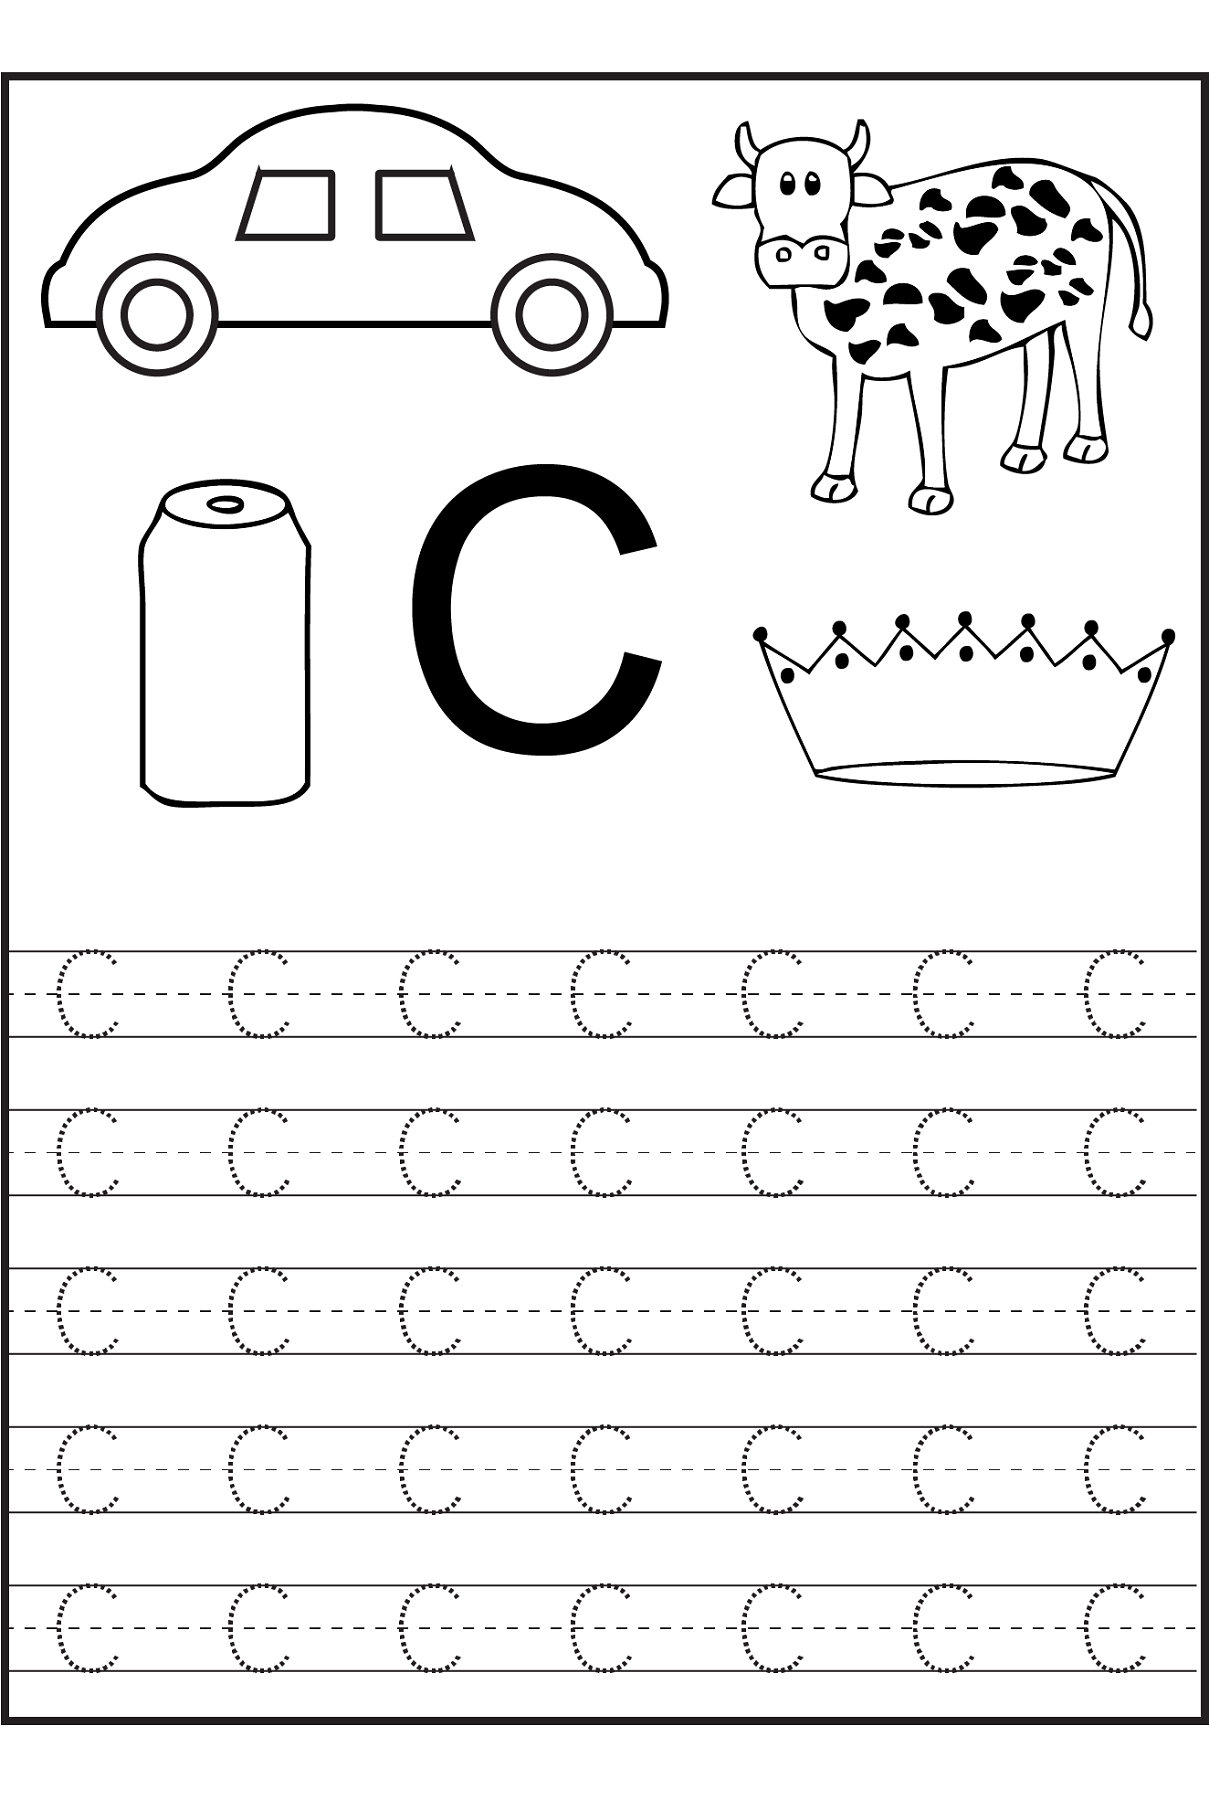 Letter C Worksheet For Preschool